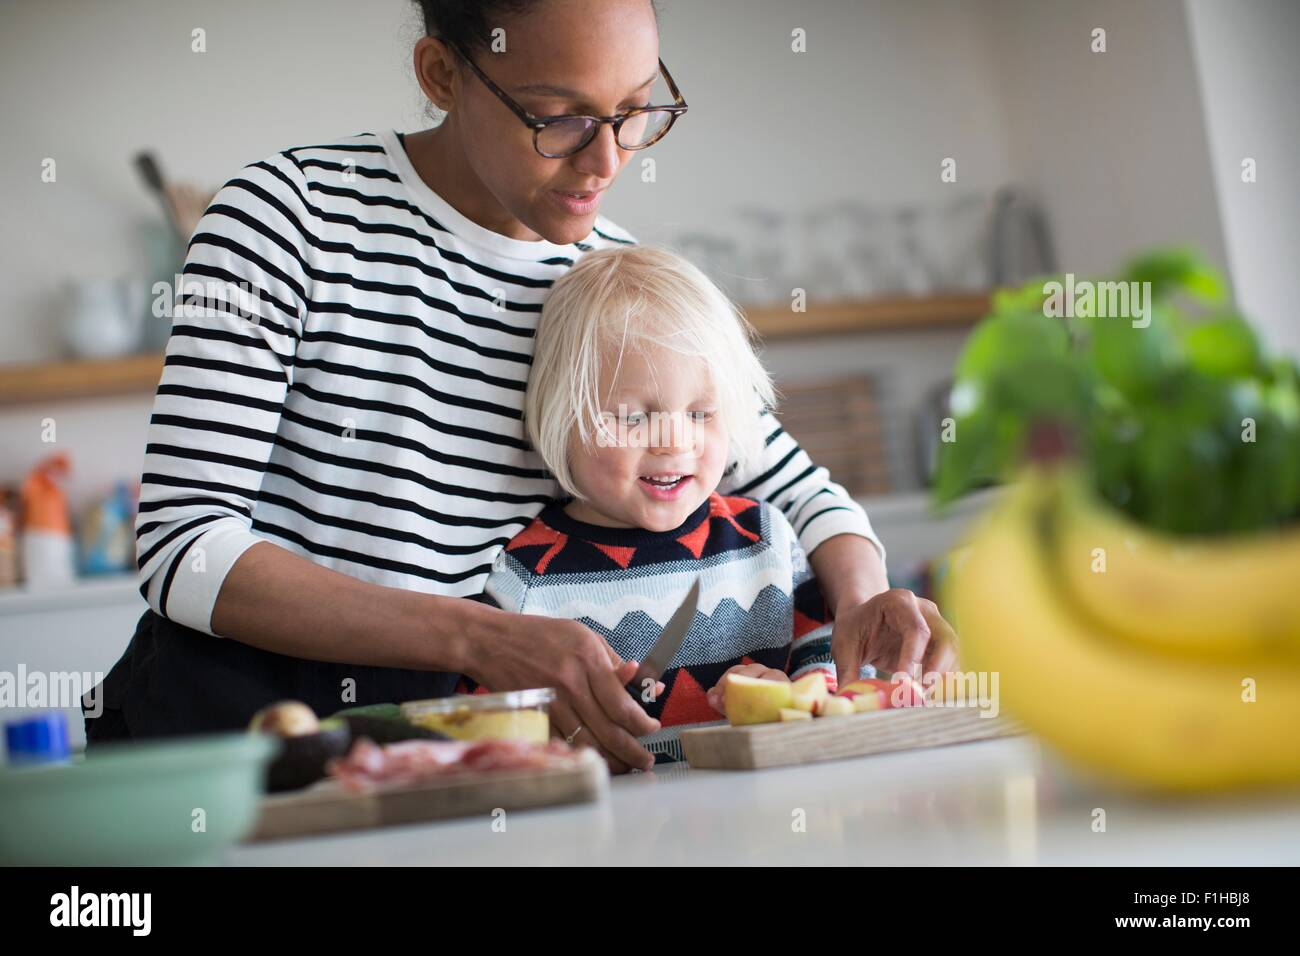 Mother helping sone prepare food in kitchen - Stock Image